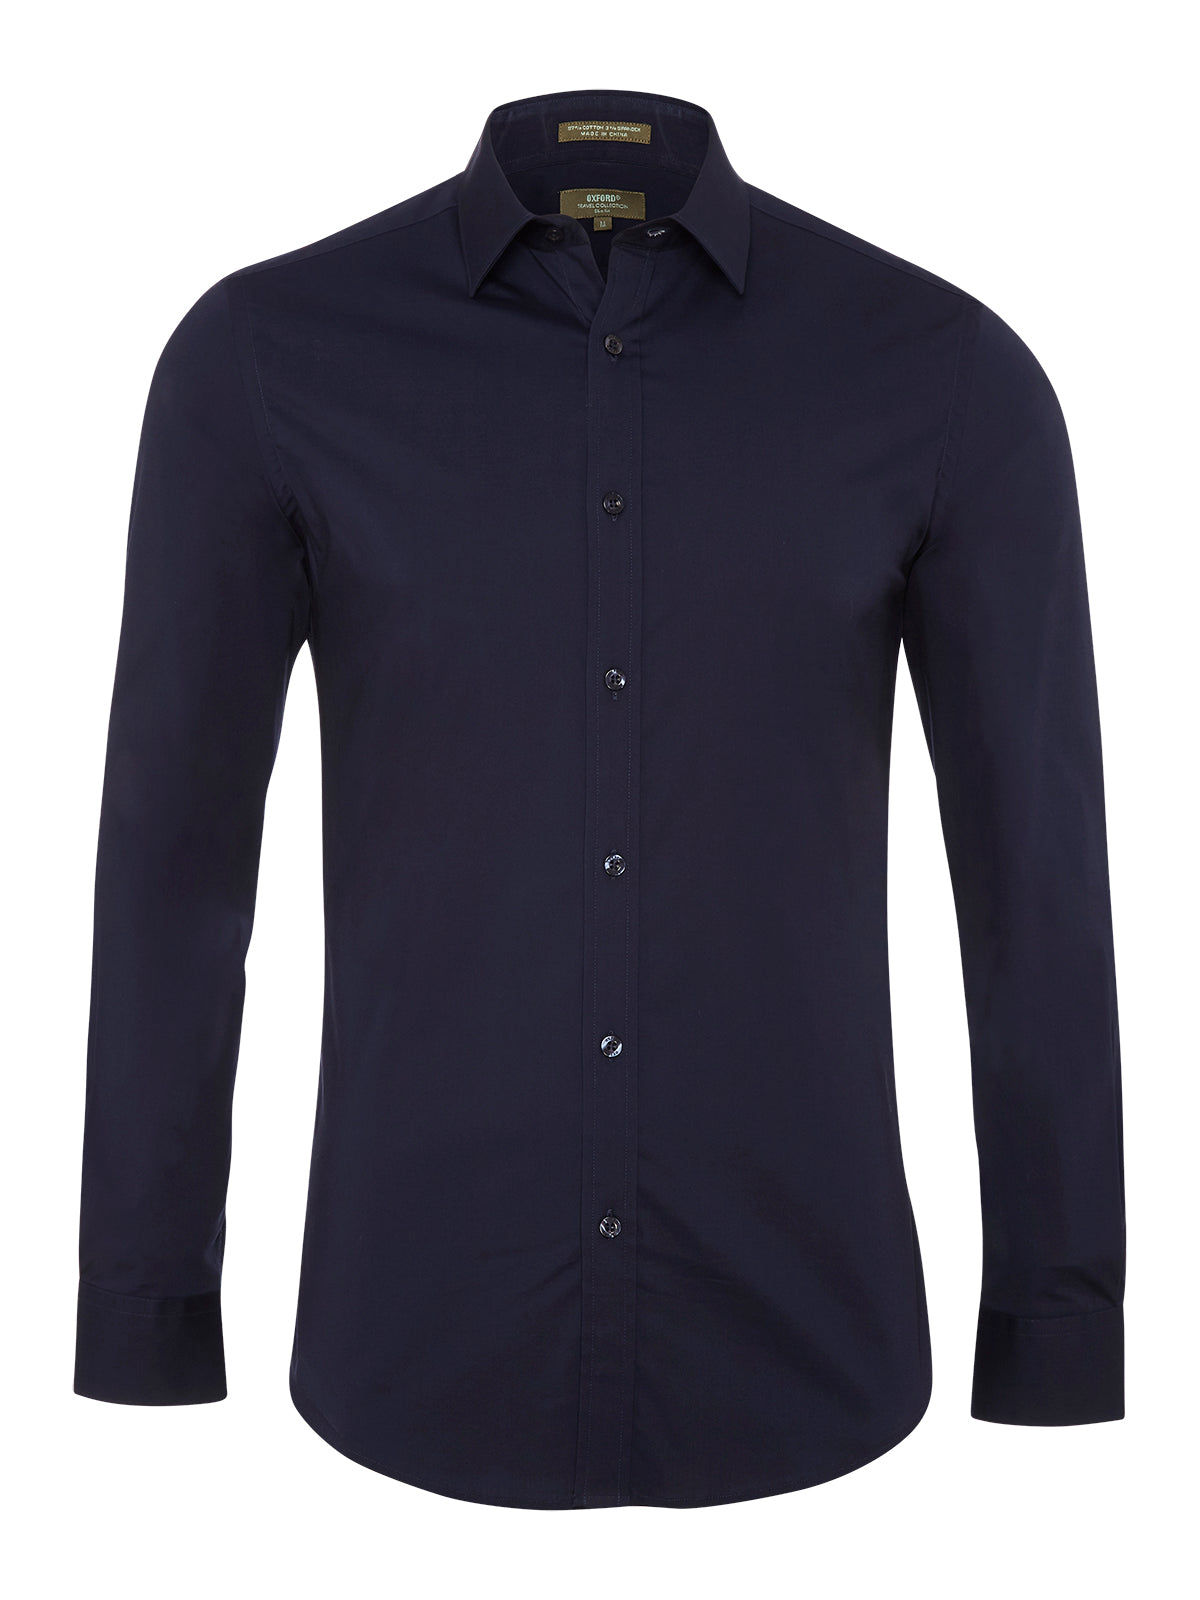 NAVY STRETCH TRAVEL SHIRT NAVY